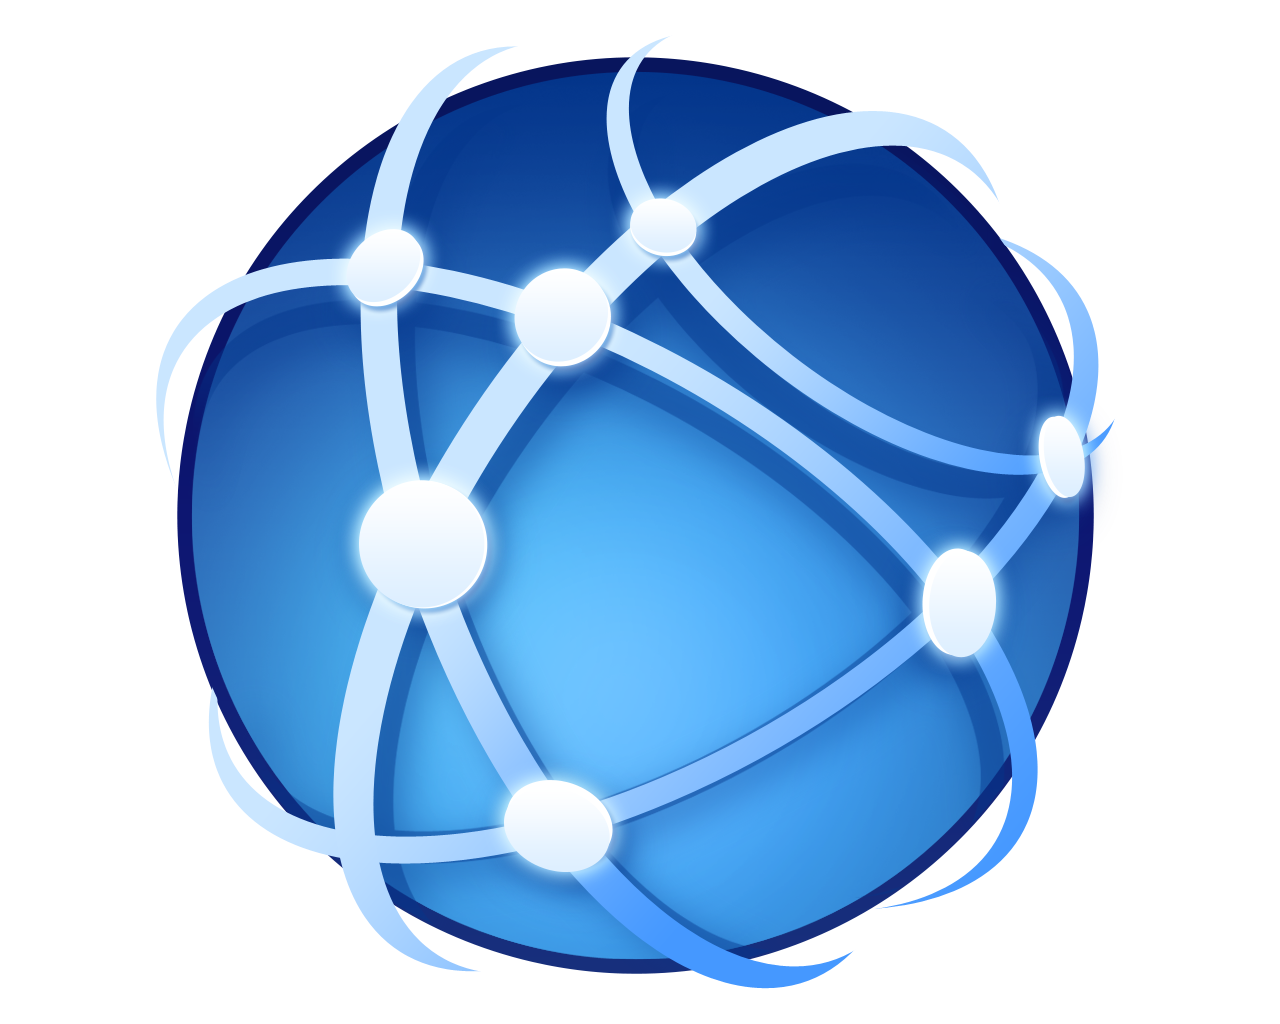 World Wide Web PNG Free Download - World Wide Web PNG